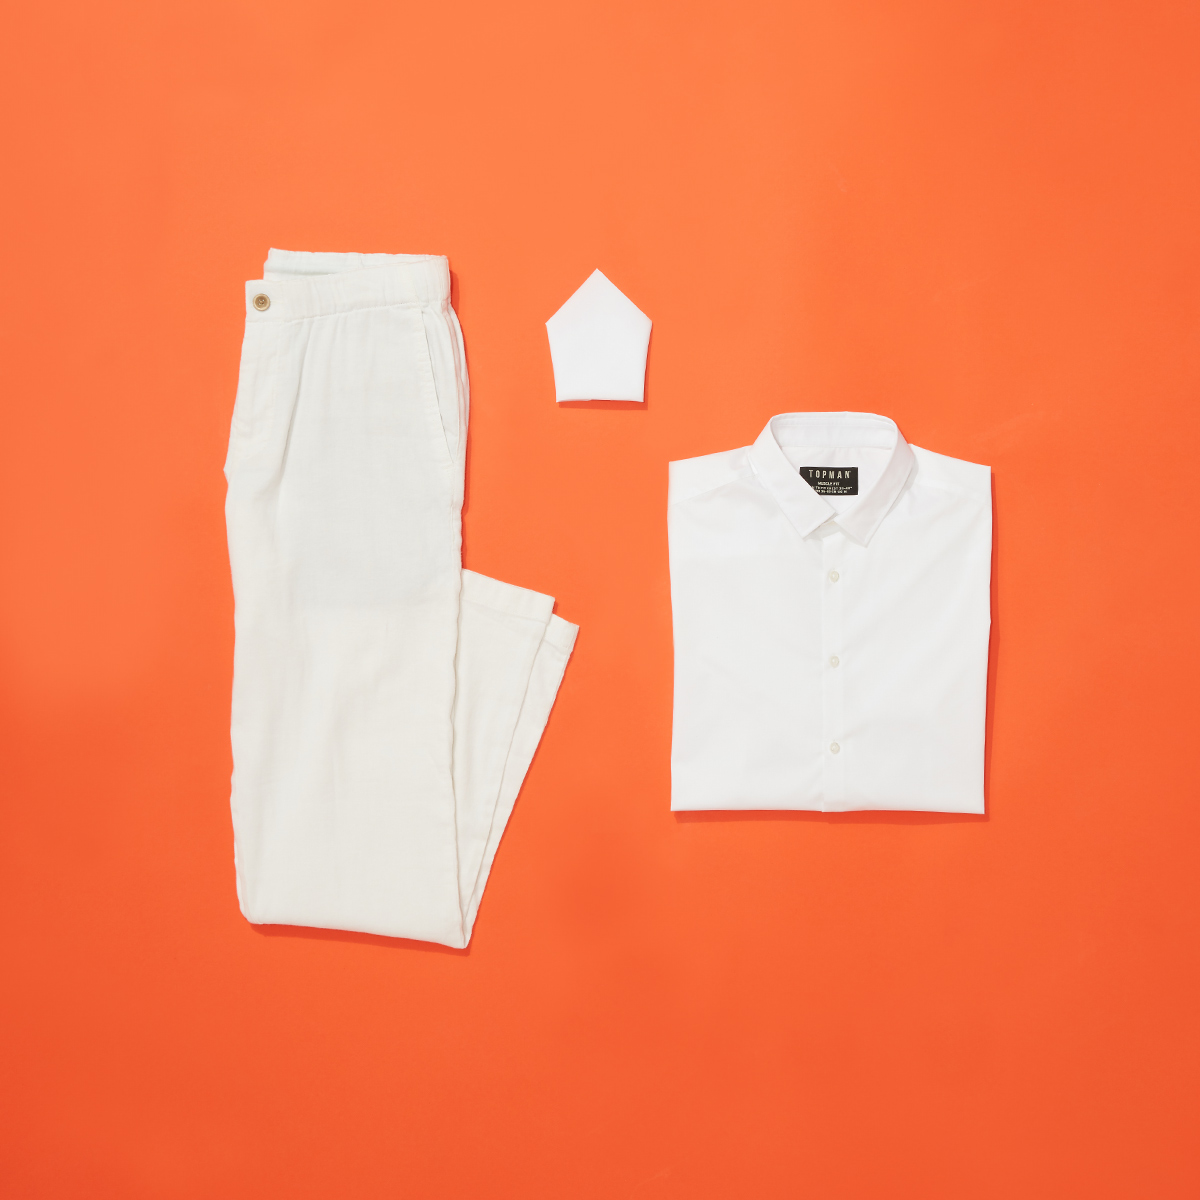 white collared shirt, white jeans and a white handkerchief